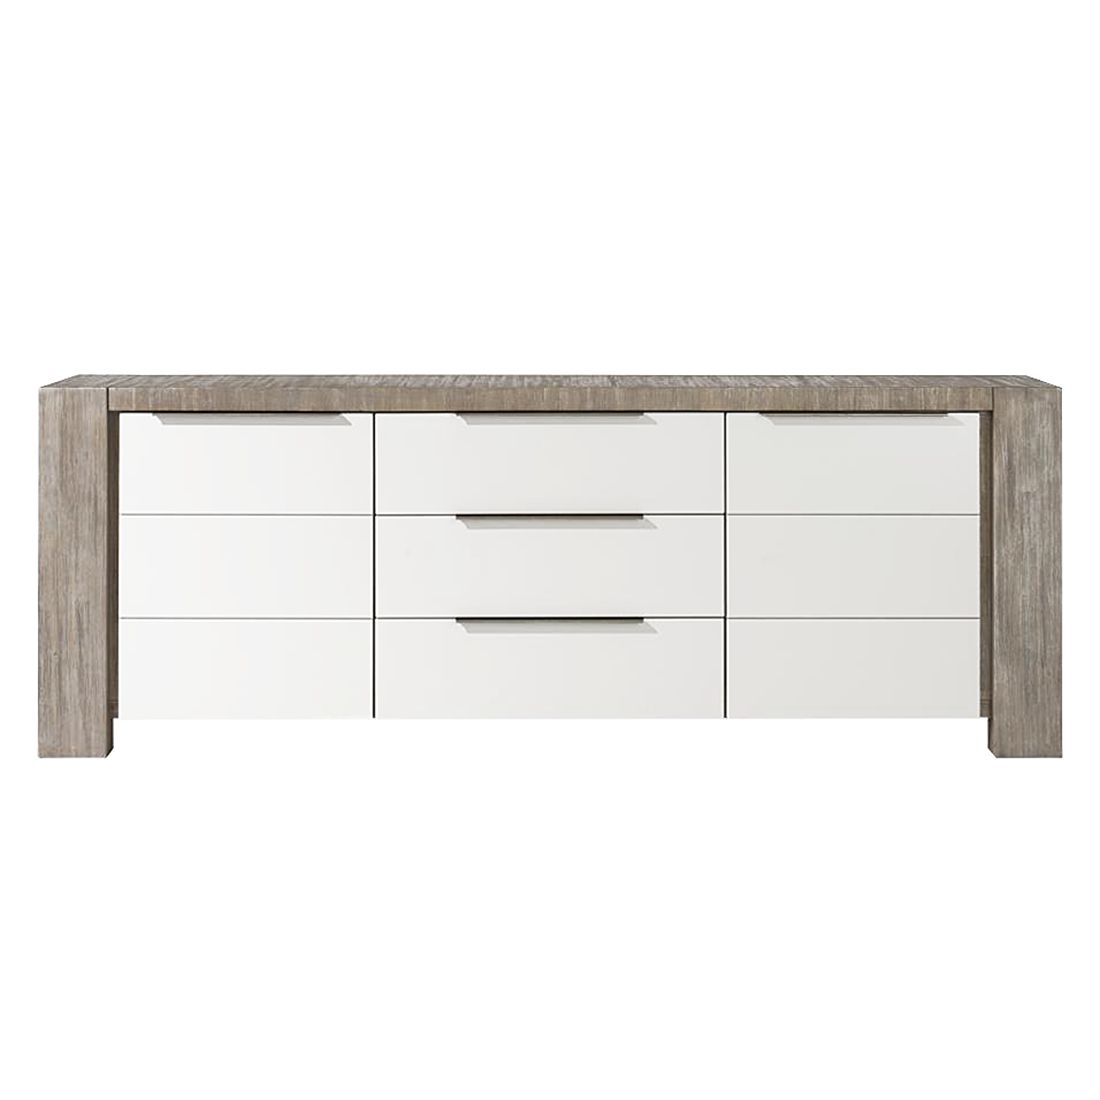 sideboard tacora akazie teilmassiv braun wei ma e 190 x 80 cm habufa tipps vom einrichter. Black Bedroom Furniture Sets. Home Design Ideas